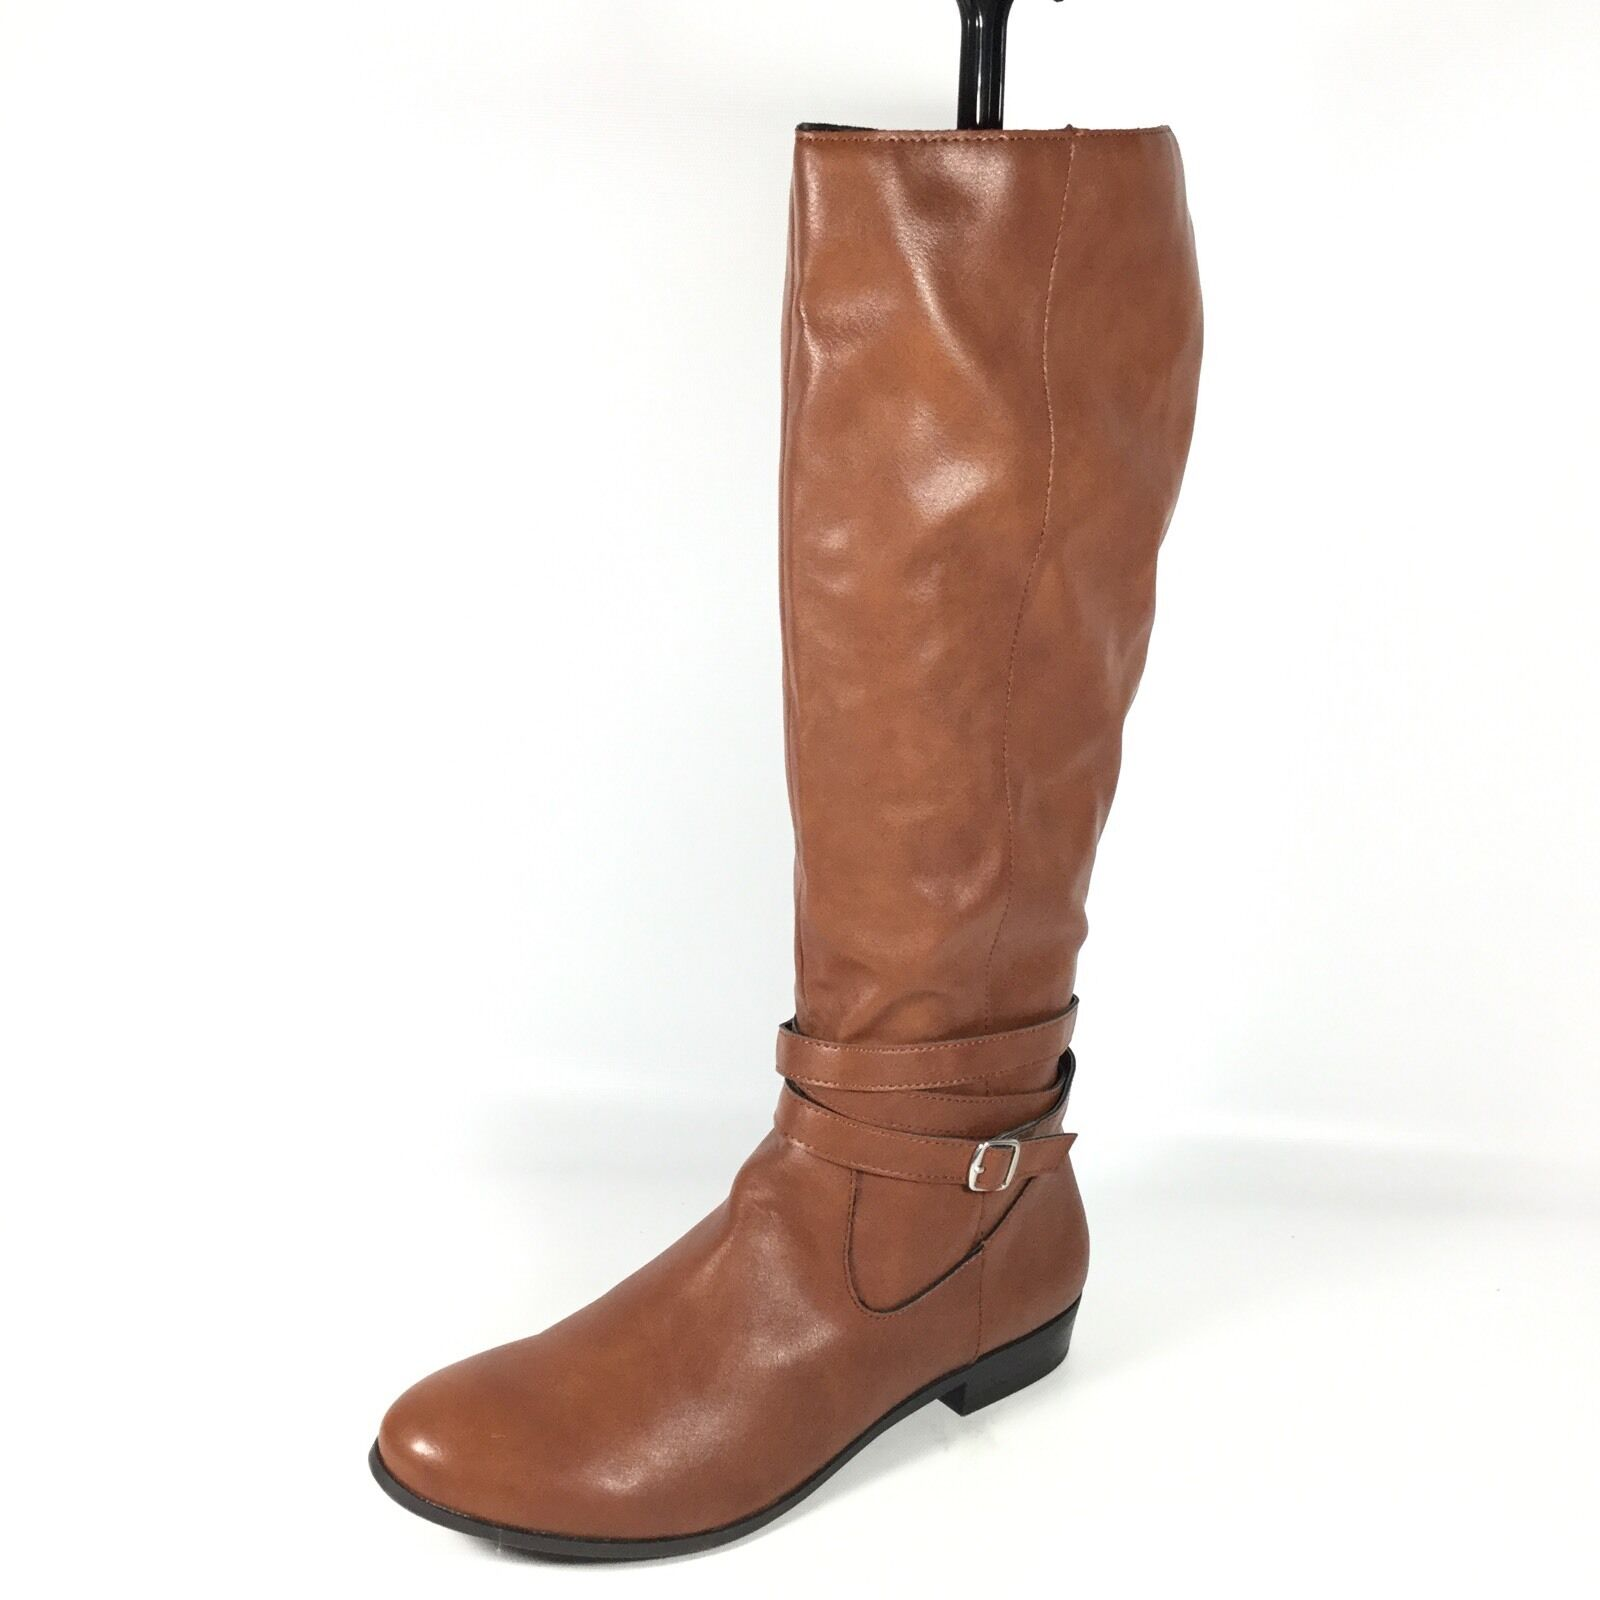 Style &Co Fridaa Women's Size 7.5 M Brown High Knee Boots.